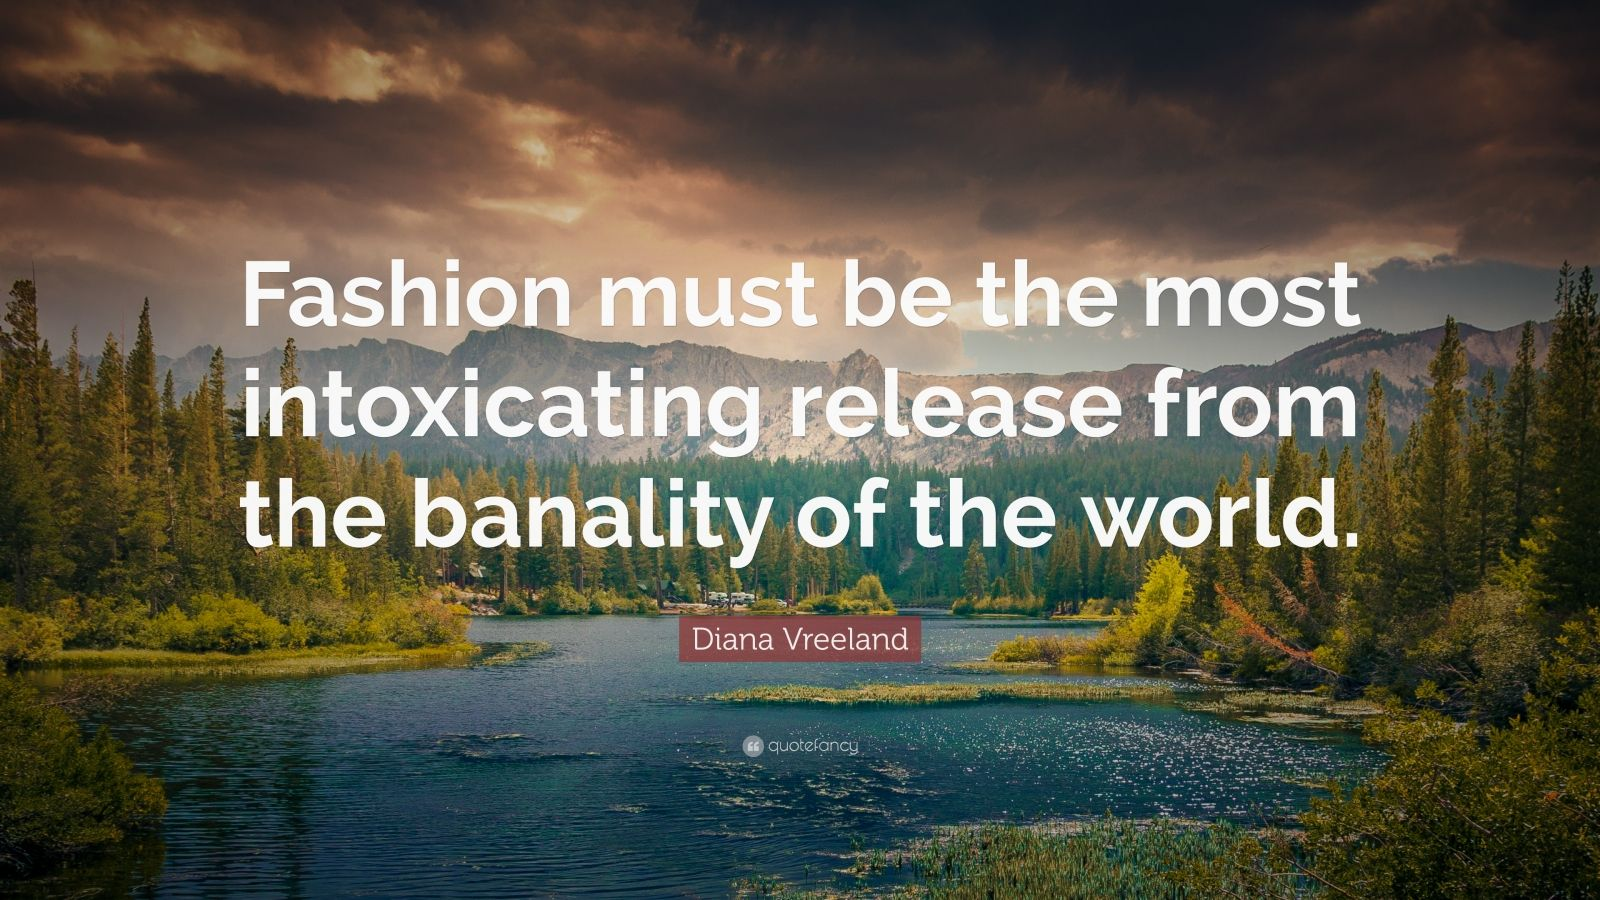 """Diana Vreeland Quote: """"Fashion must be the most intoxicating release from the banality of the world."""""""